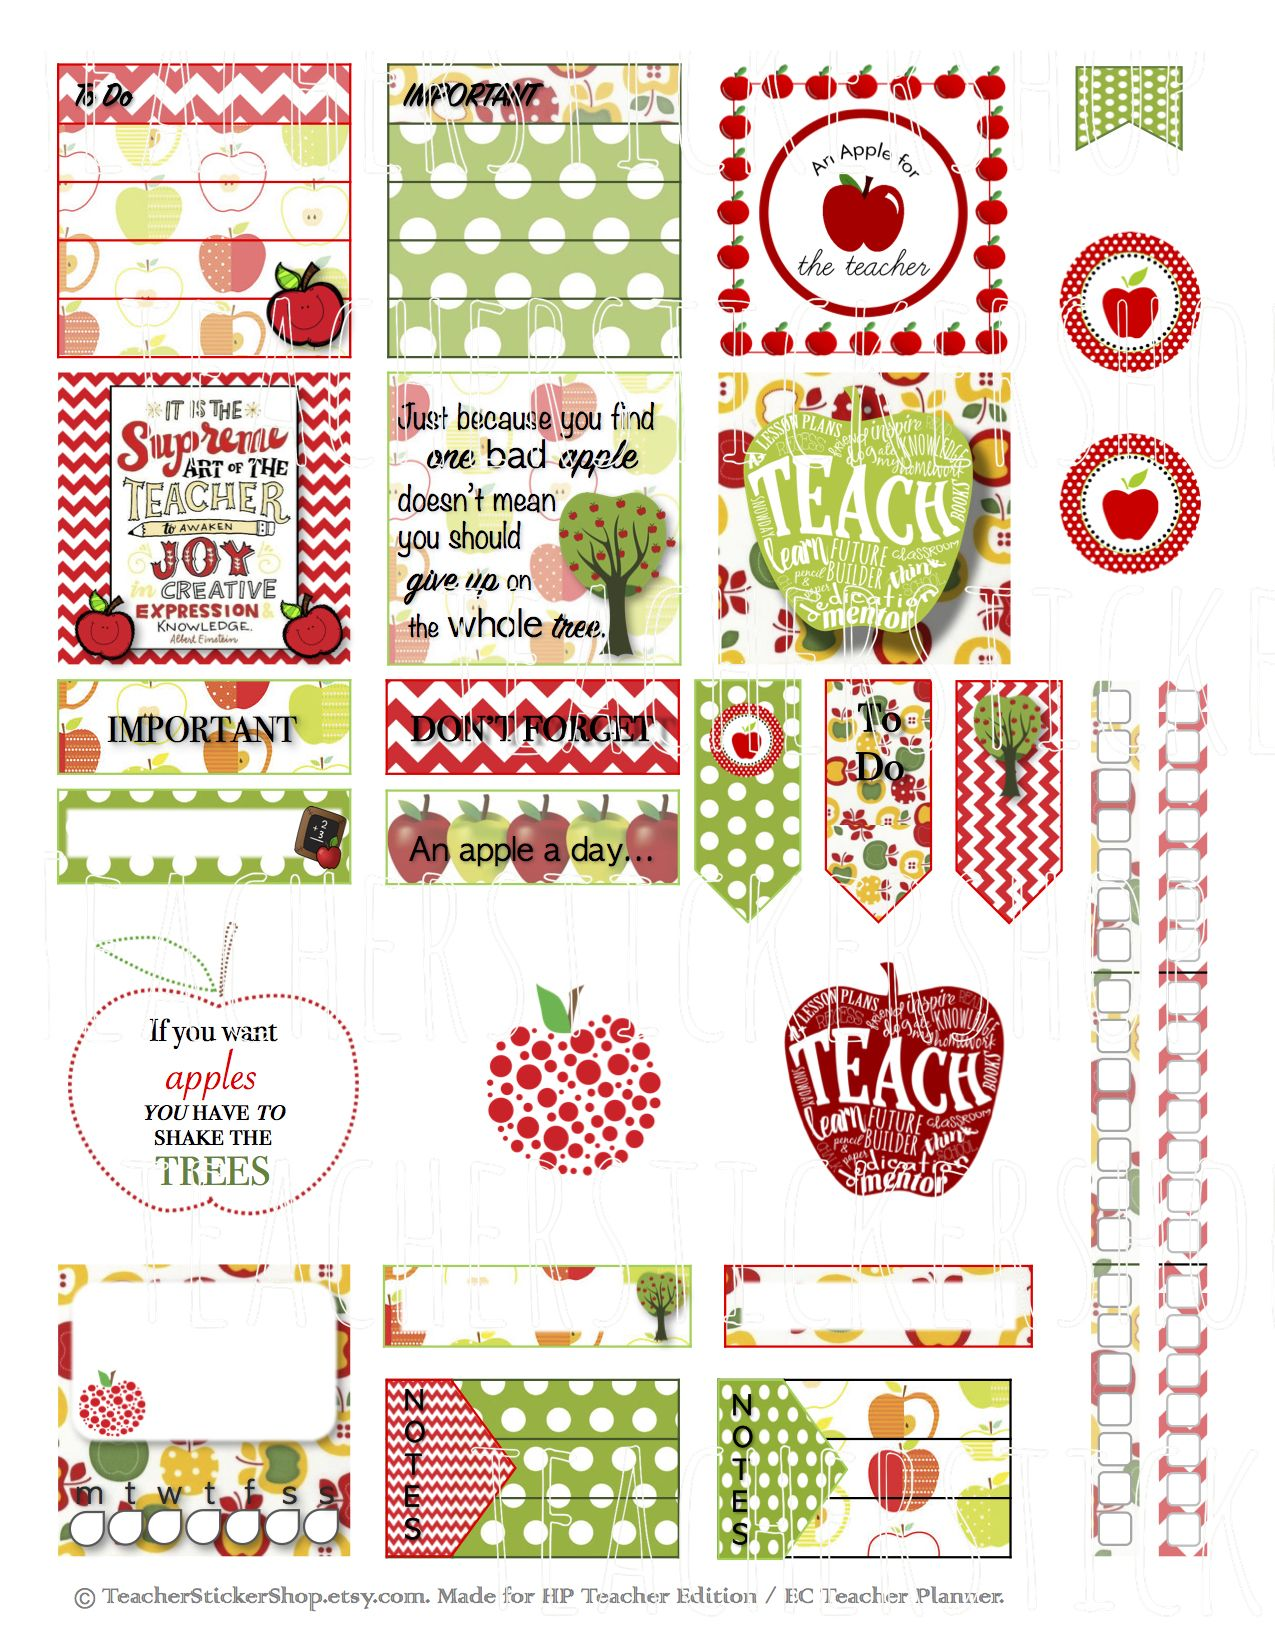 Apple Teacher Stickers PRINTABLE - made especially for the